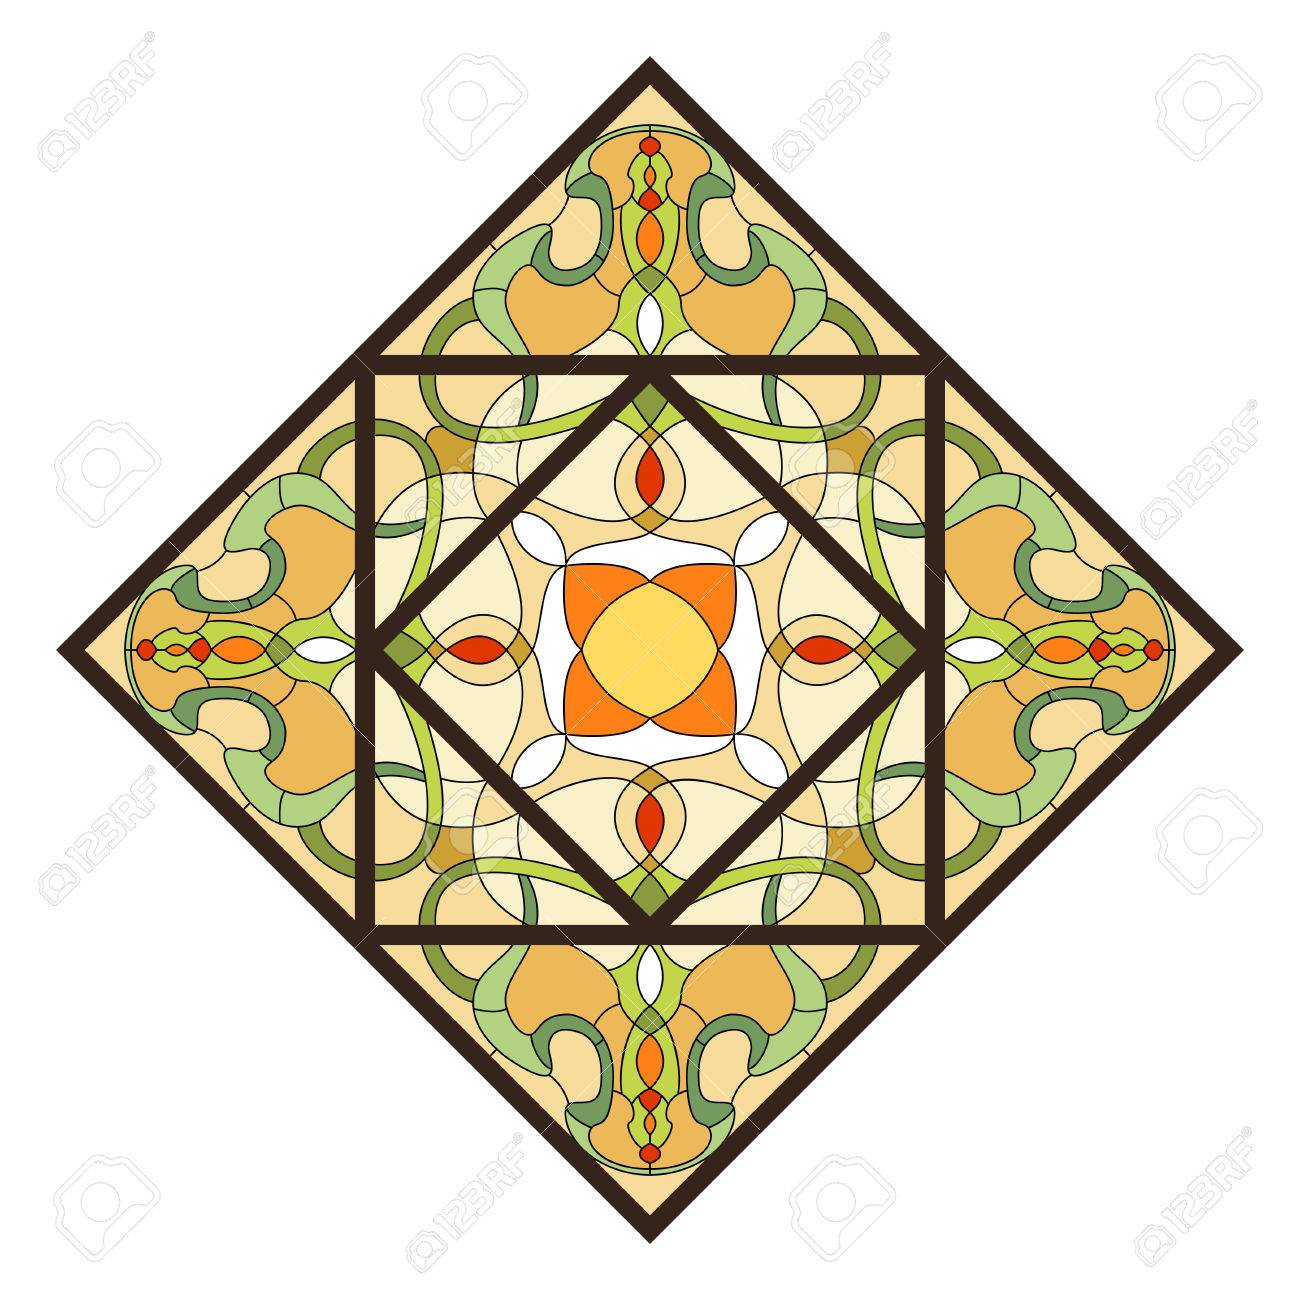 Stained glass pattern for ceiling light with ornament stained glass pattern for ceiling light with ornament 48768620 mozeypictures Choice Image